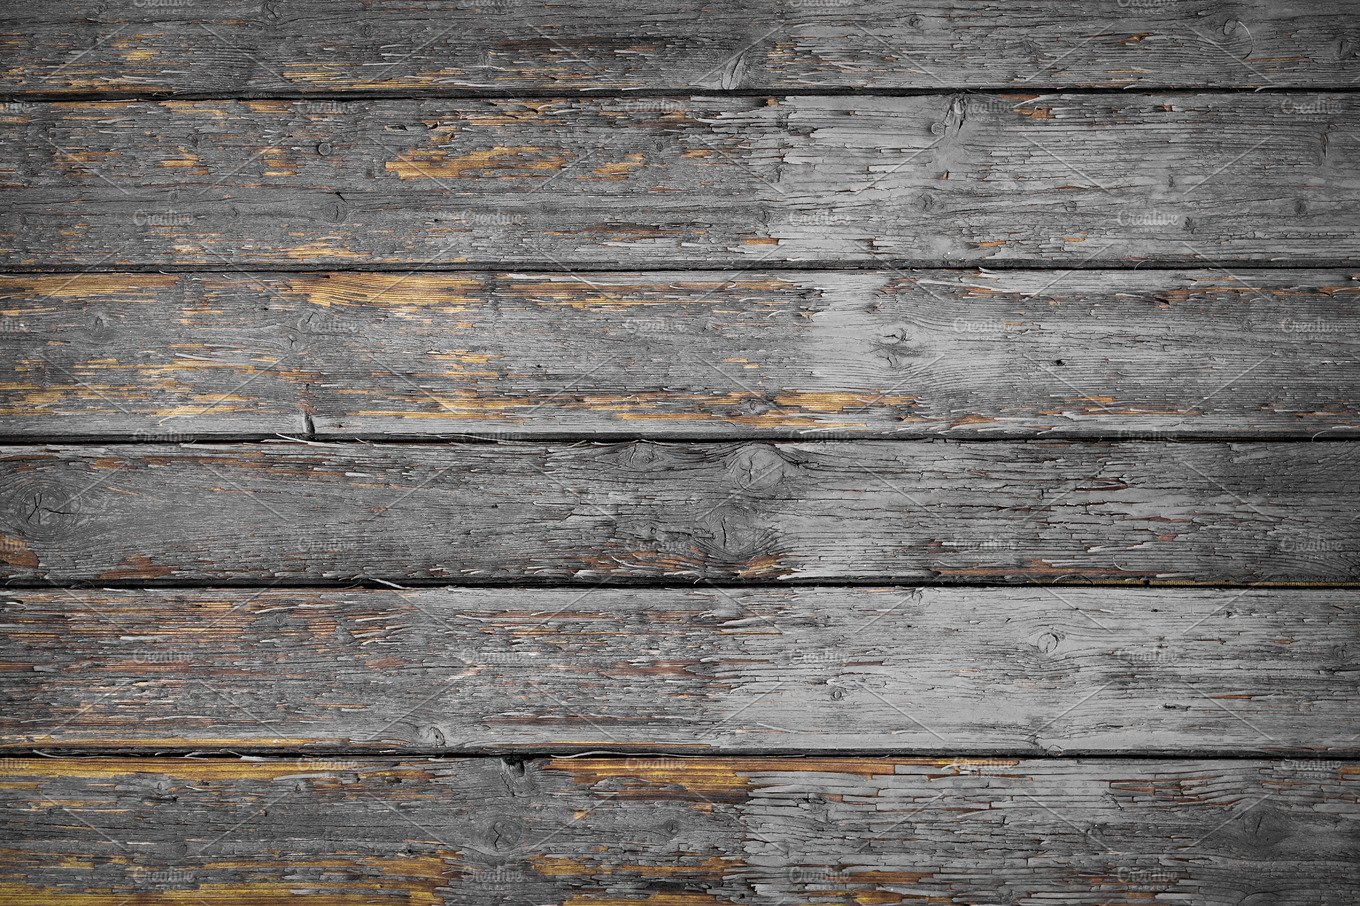 Rustic wood background texture abstract photos